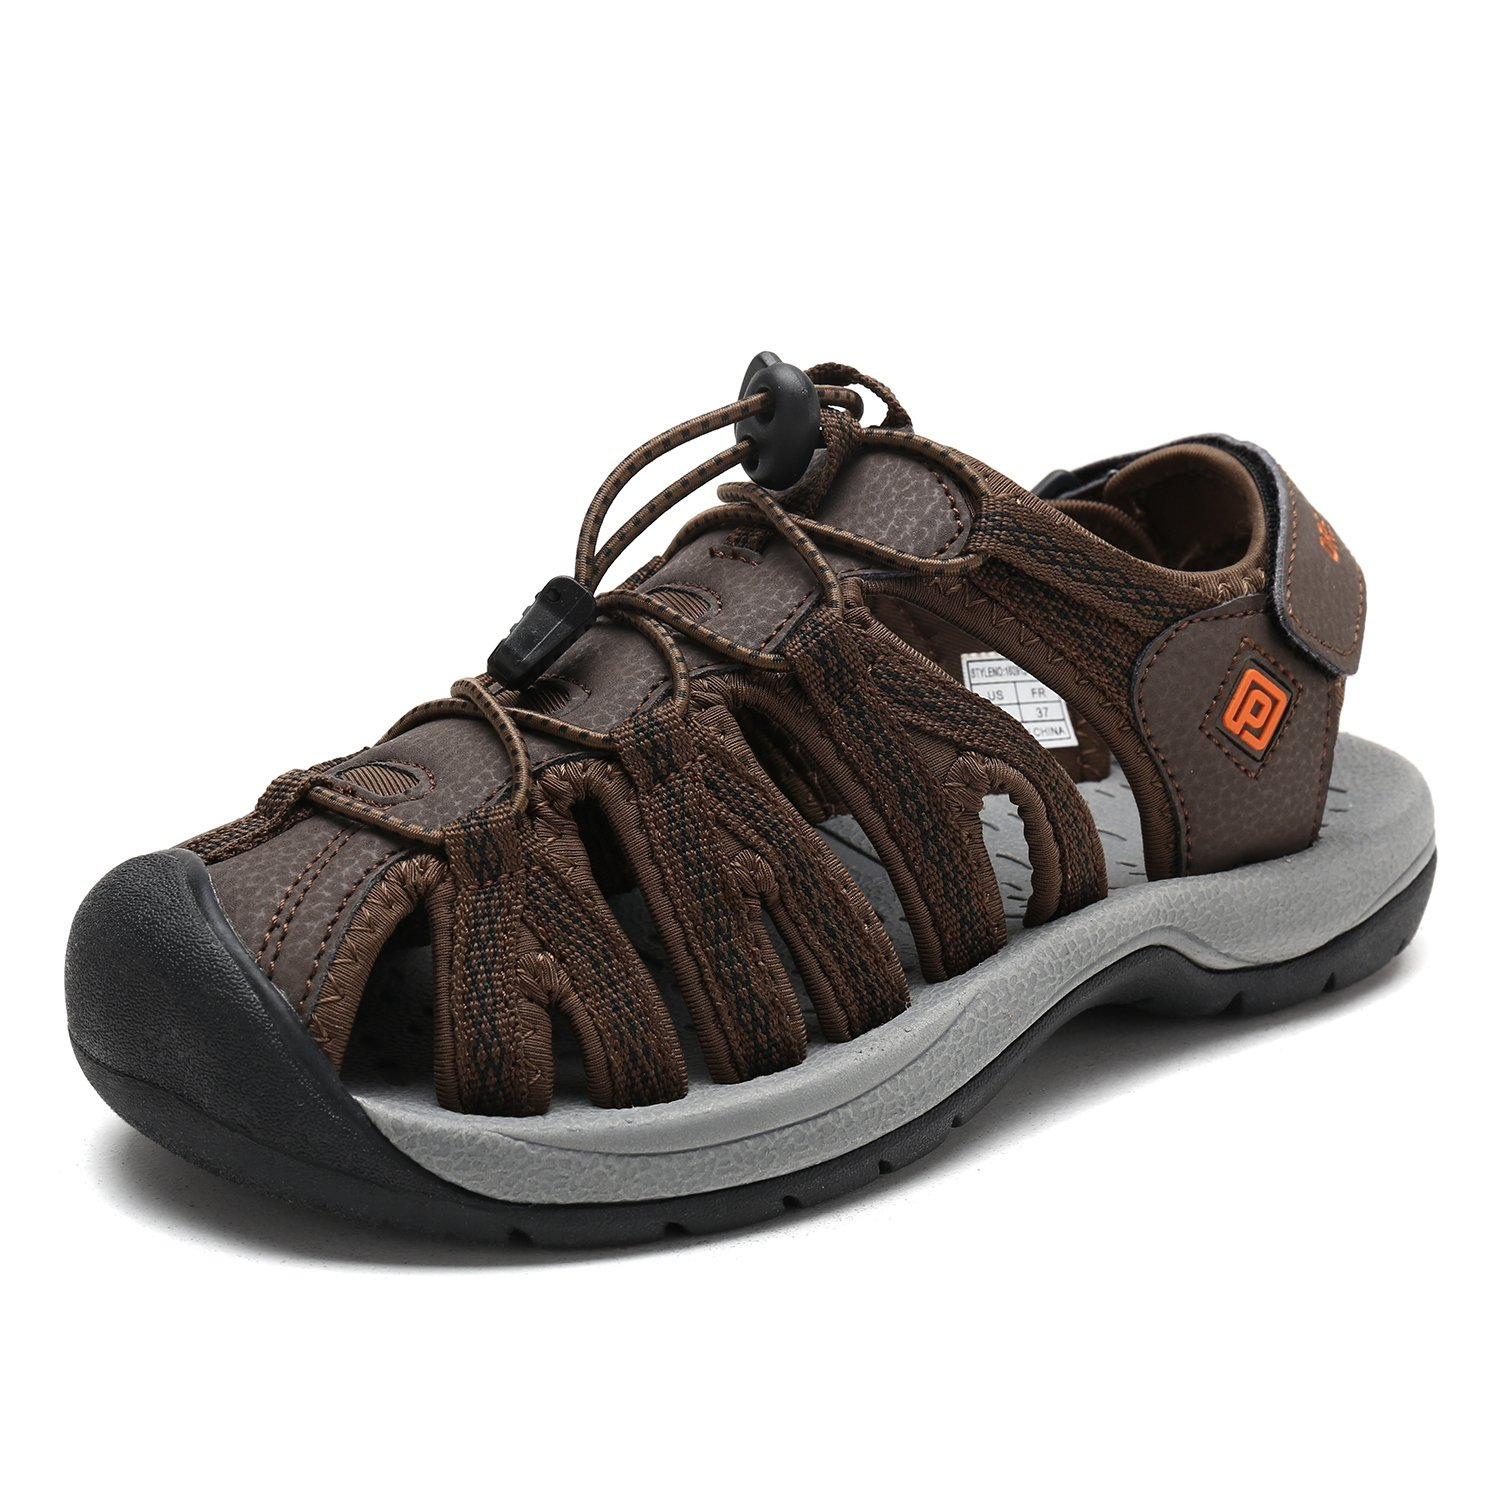 DREAM PAIRS Women's 160912-W Adventurous Summer Outdoor Sandals B077GBRYYK 7 B(M) US|Brown Blk Orange